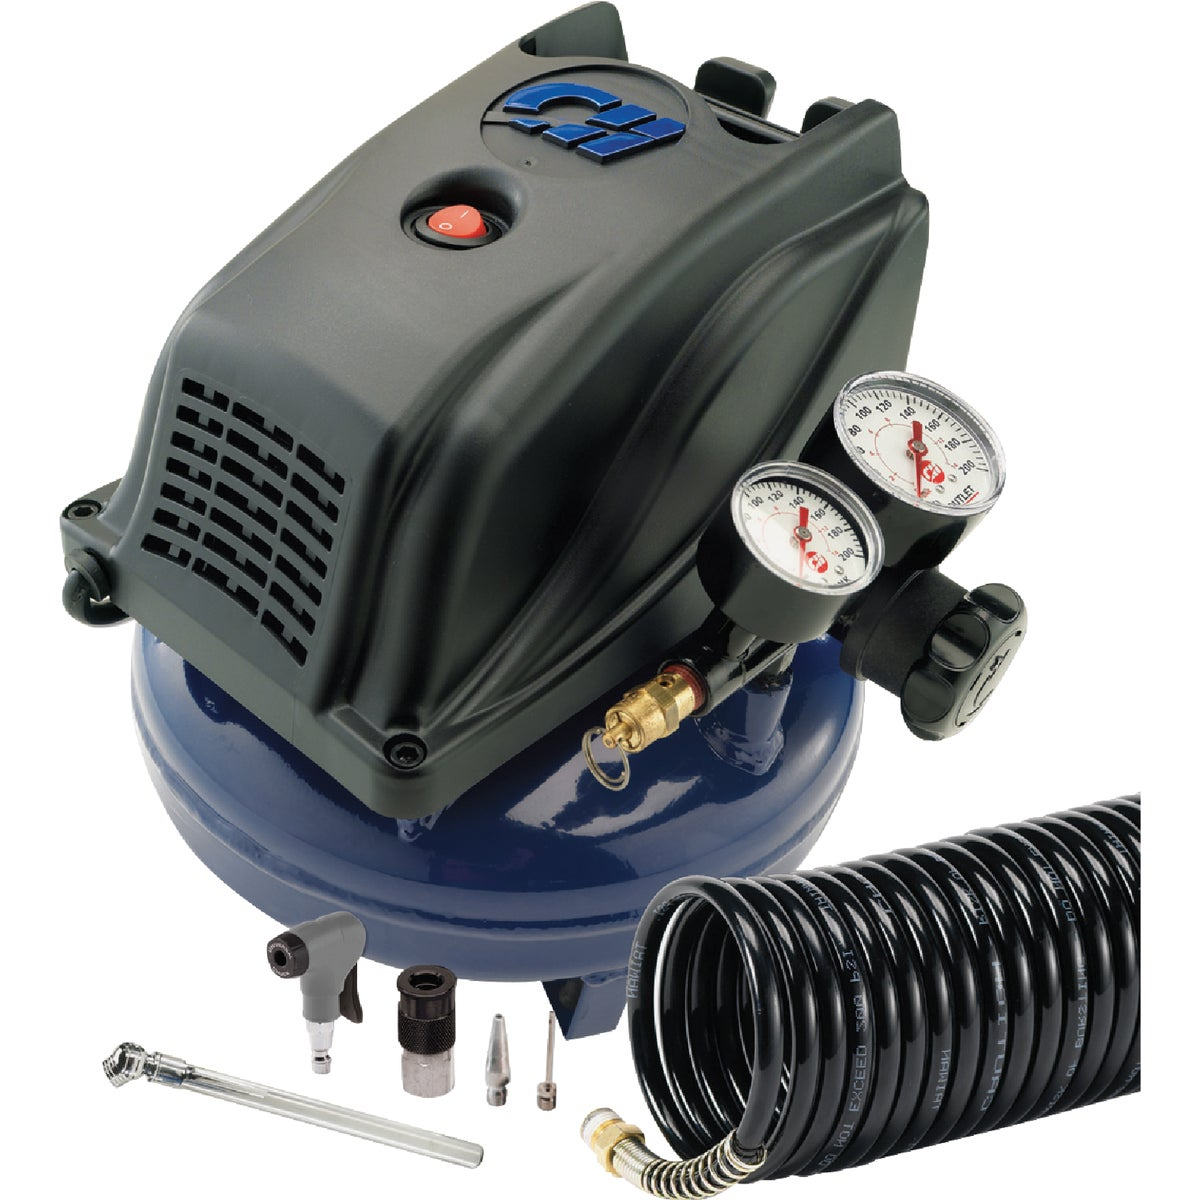 125 PSI AIR COMPRESSOR - FP260000DI by Campbell Hausfeld Di